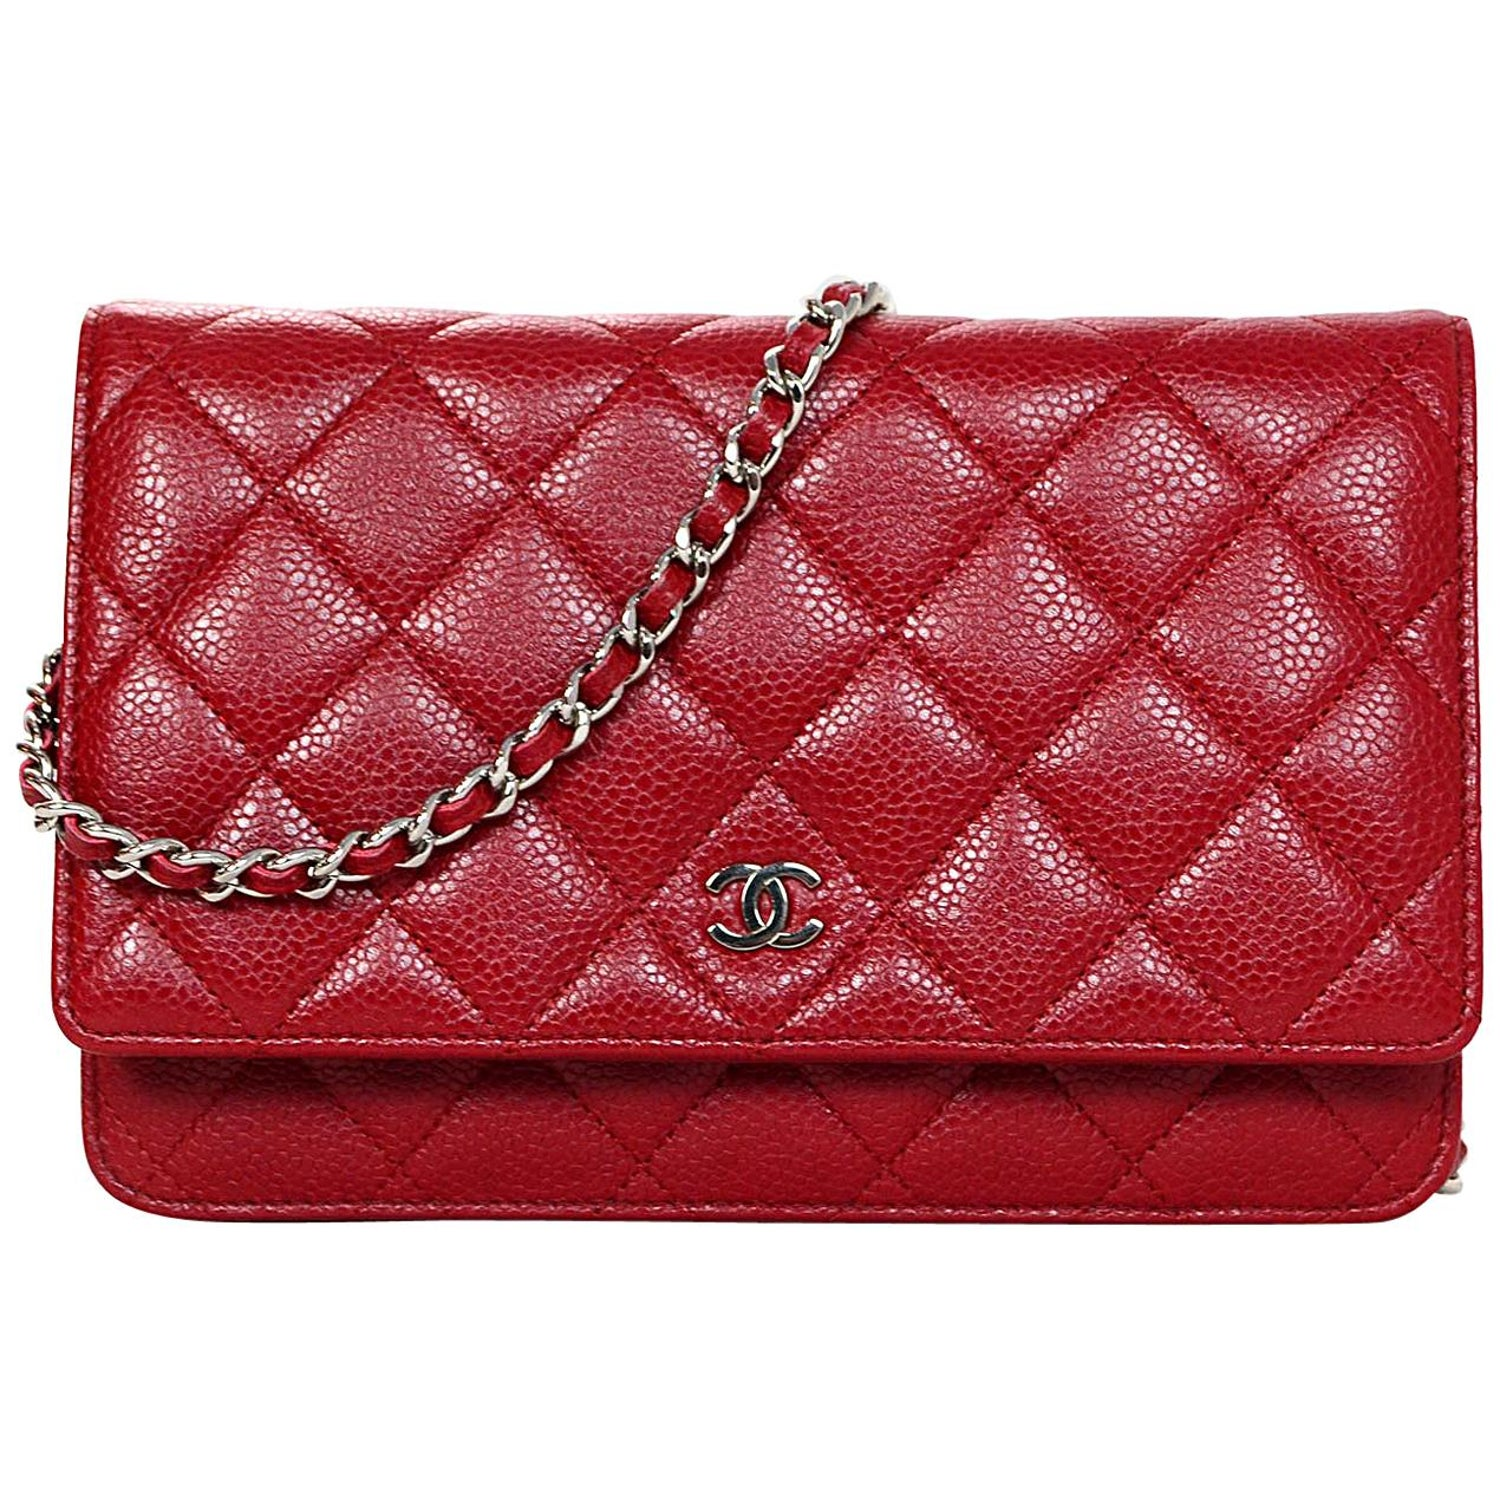 2e0d142300b3 Chanel Red Caviar Leather WOC Wallet On Chain Crossbody Bag w  Dust Bag at  1stdibs